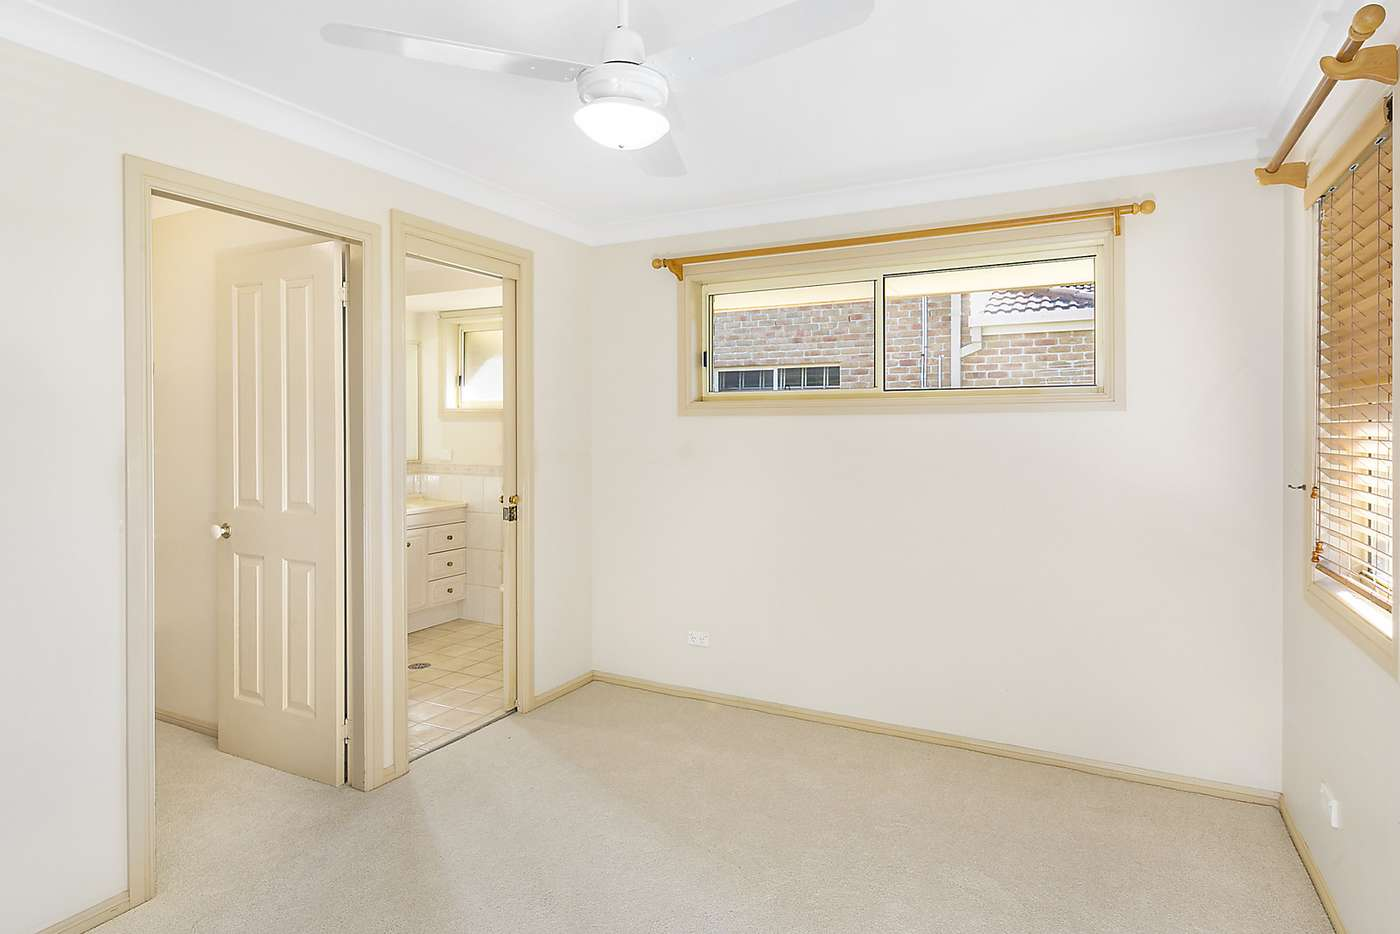 Fifth view of Homely house listing, 4A Eleventh Avenue, Sawtell NSW 2452